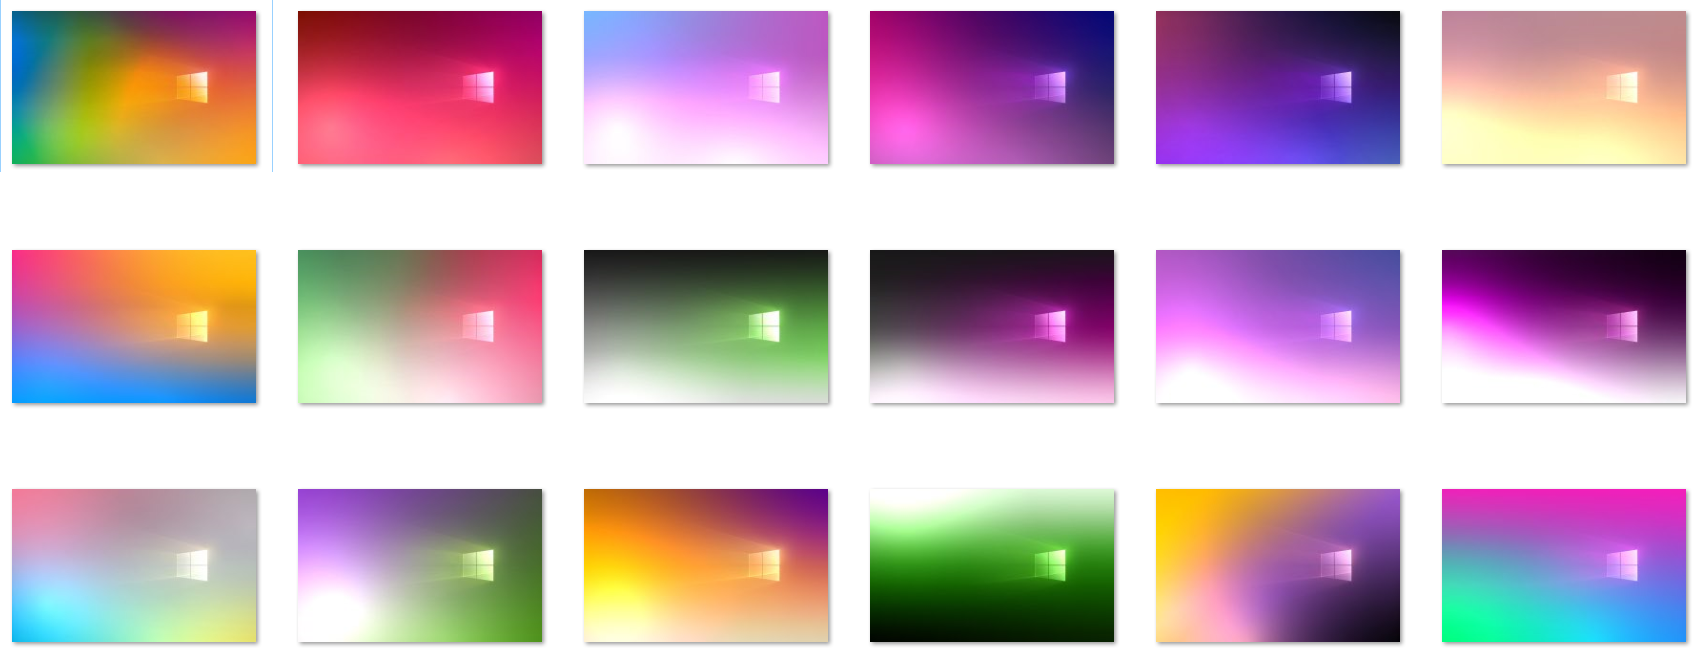 Windows 10 Pride Wallpaper Pack by protheme